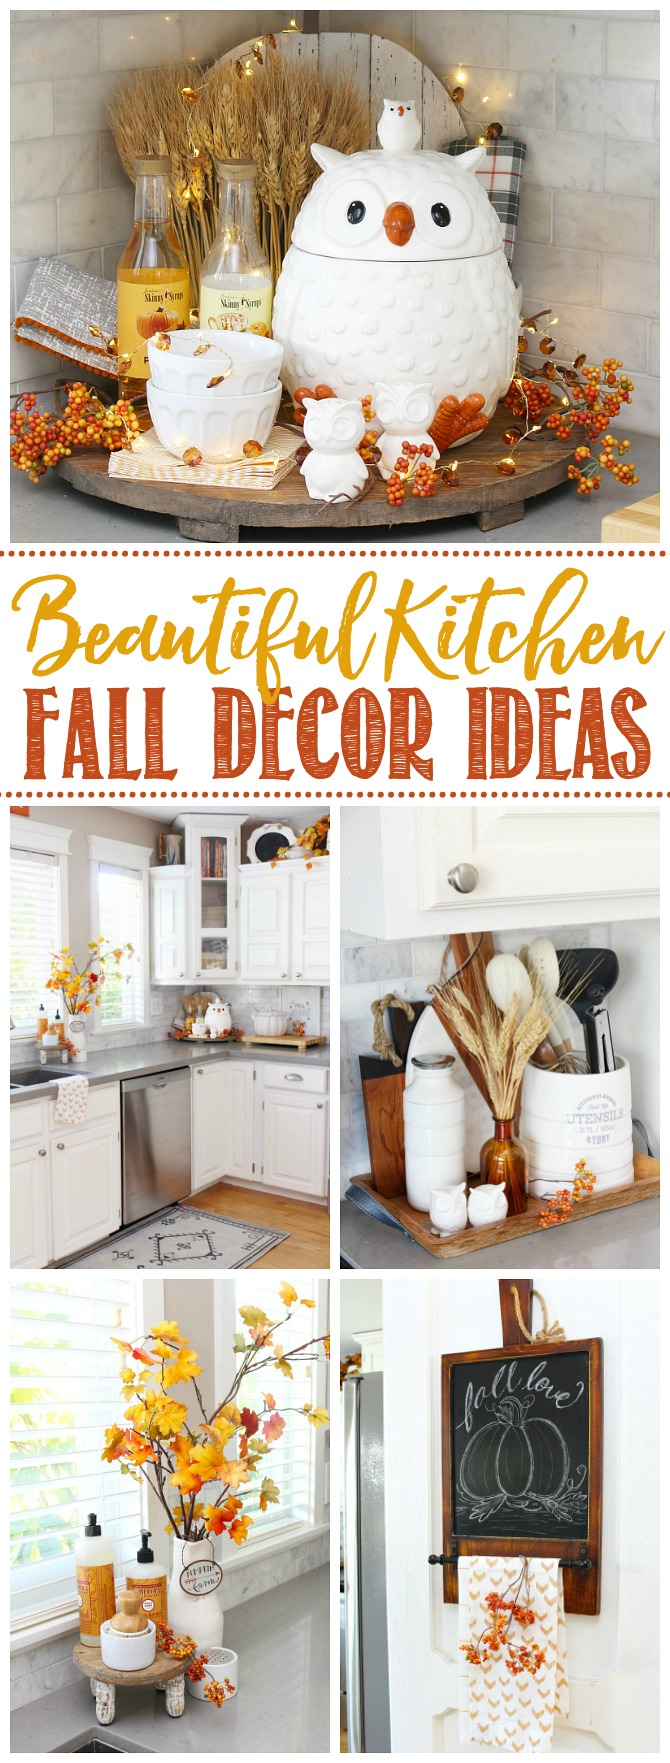 Fall Kitchen Decor Ideas   Clean and Scentsible   Fall kitchen ...